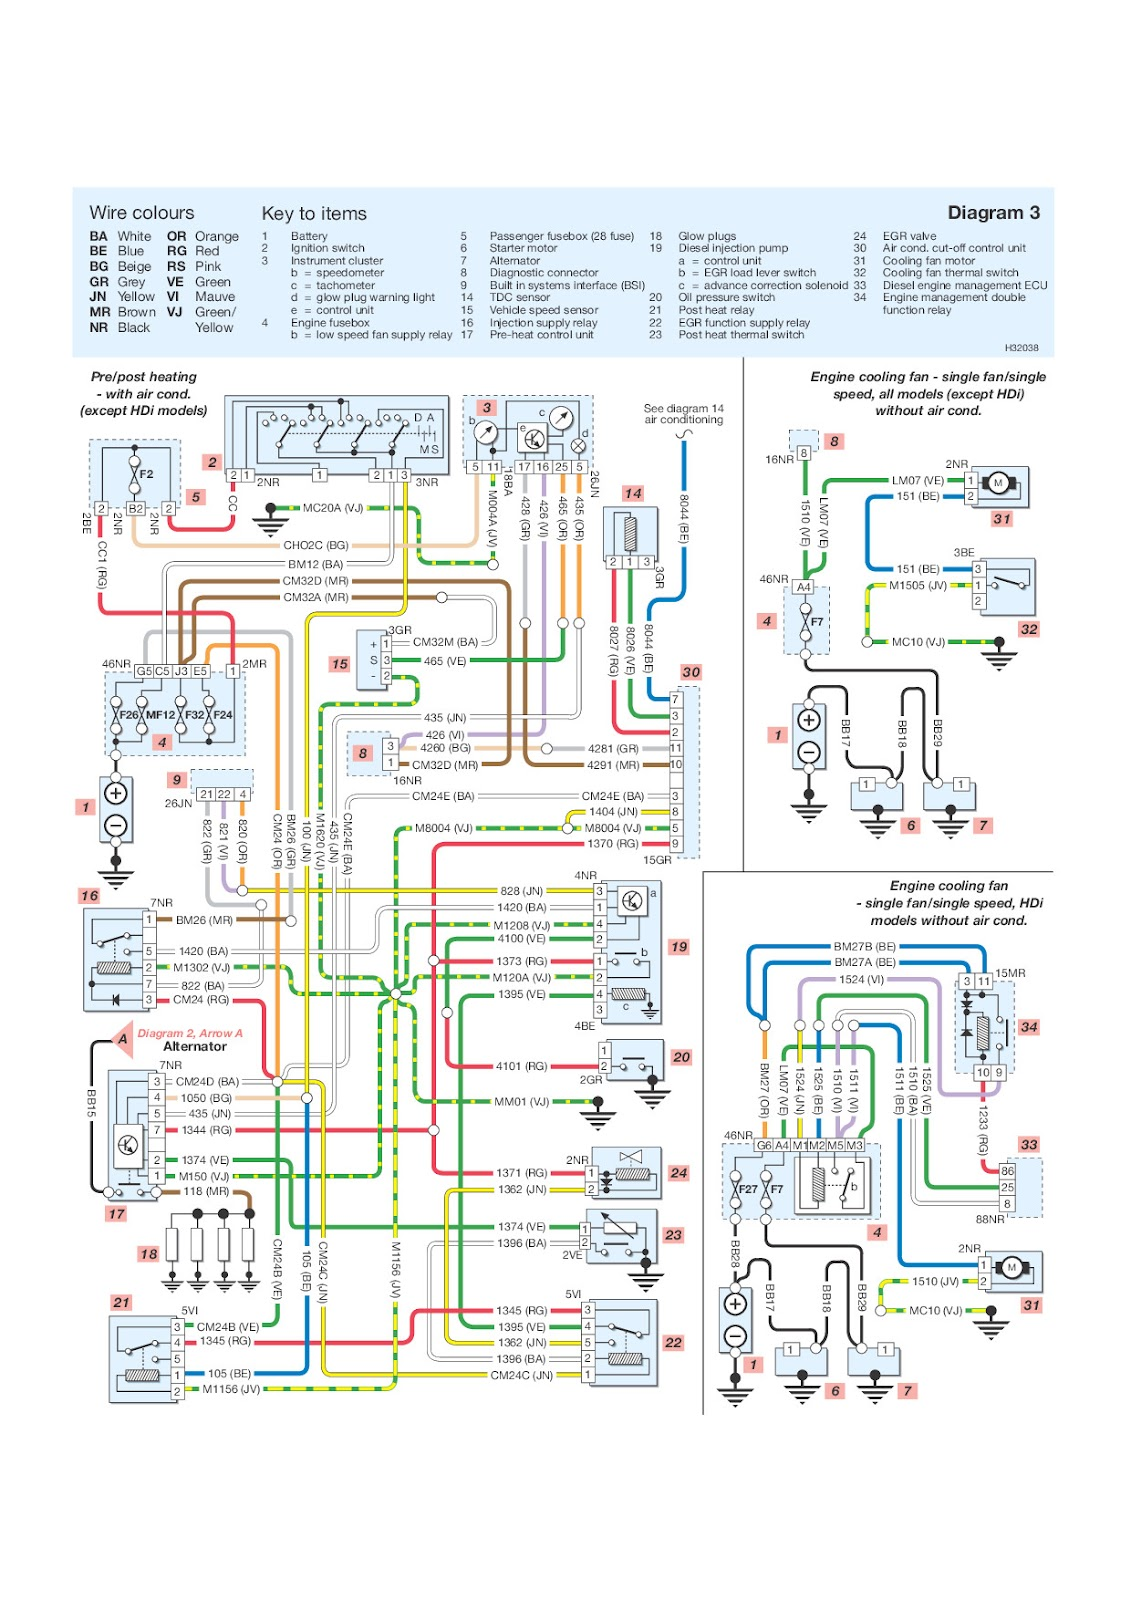 Fine car ignition system wiring diagram photos electrical system 307 ignition system wiring diagram ignition system in a car car cheapraybanclubmaster Gallery